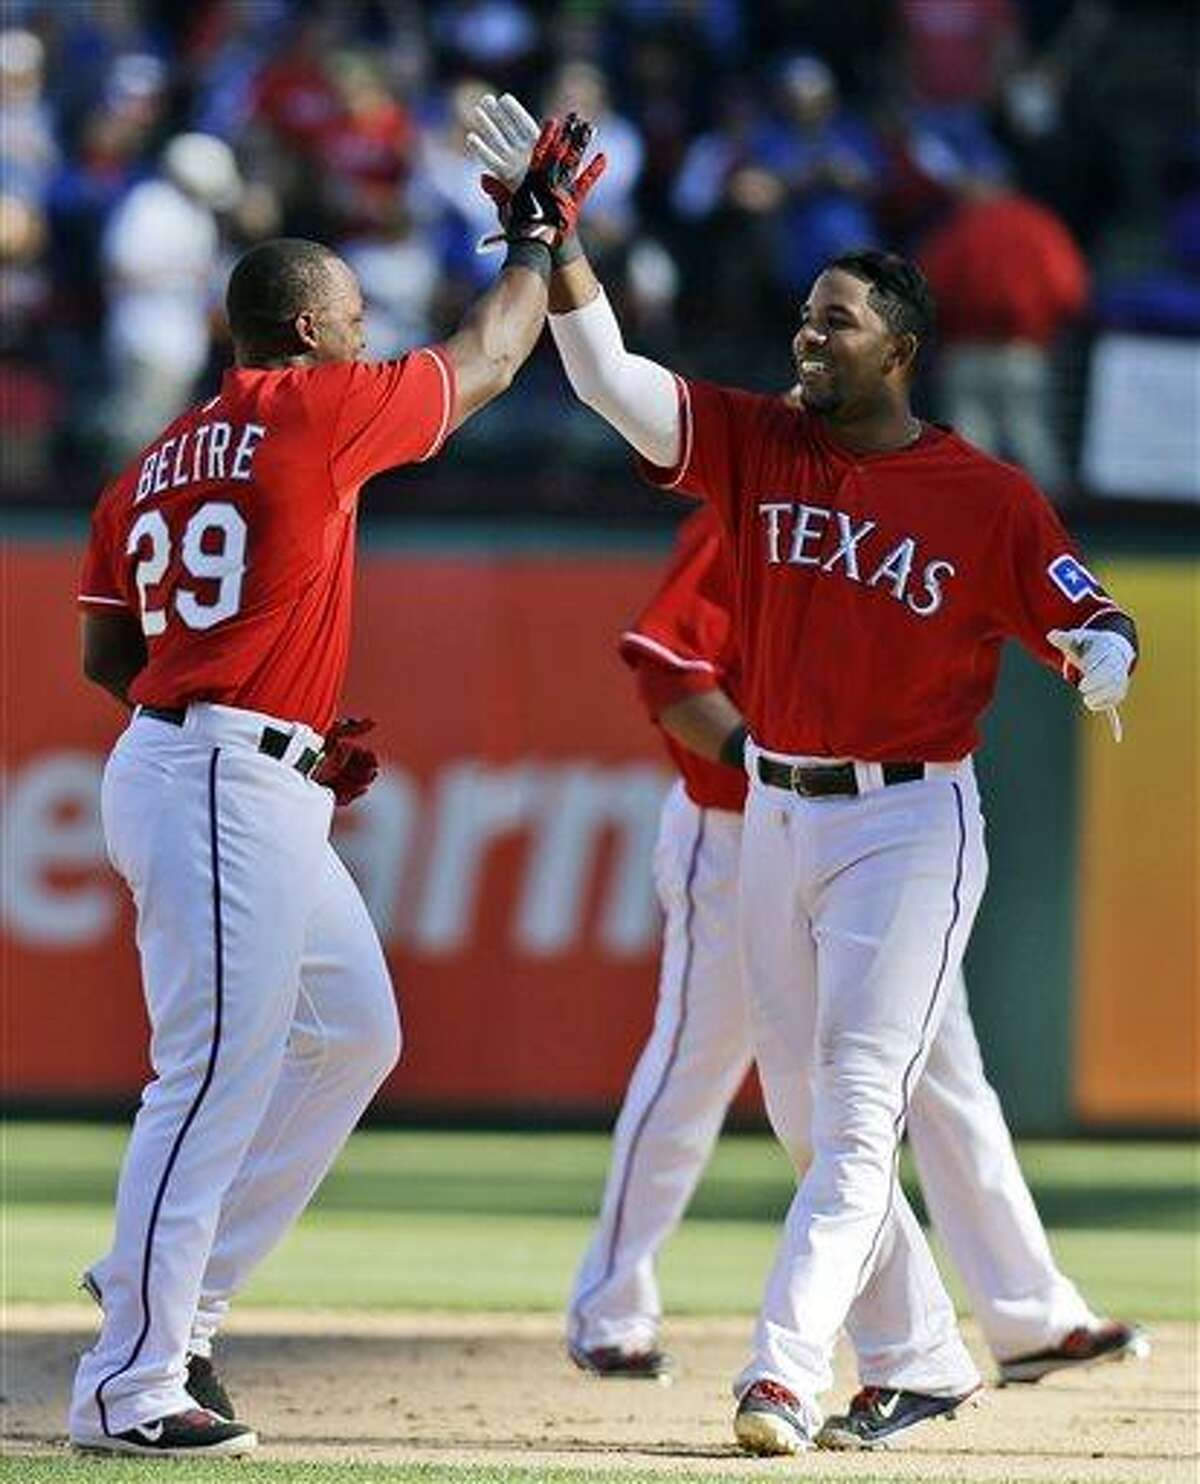 Texas Rangers' Adrian Beltre, left, celebrates with Elvis Andrus after Beltre's winning RBI single scored Andrus in the ninth inning of a baseball game against the Boston Red Sox, Sunday, May 5, 2013, in Arlington, Texas. The Rangers won 4-3. (AP Photo/LM Otero)